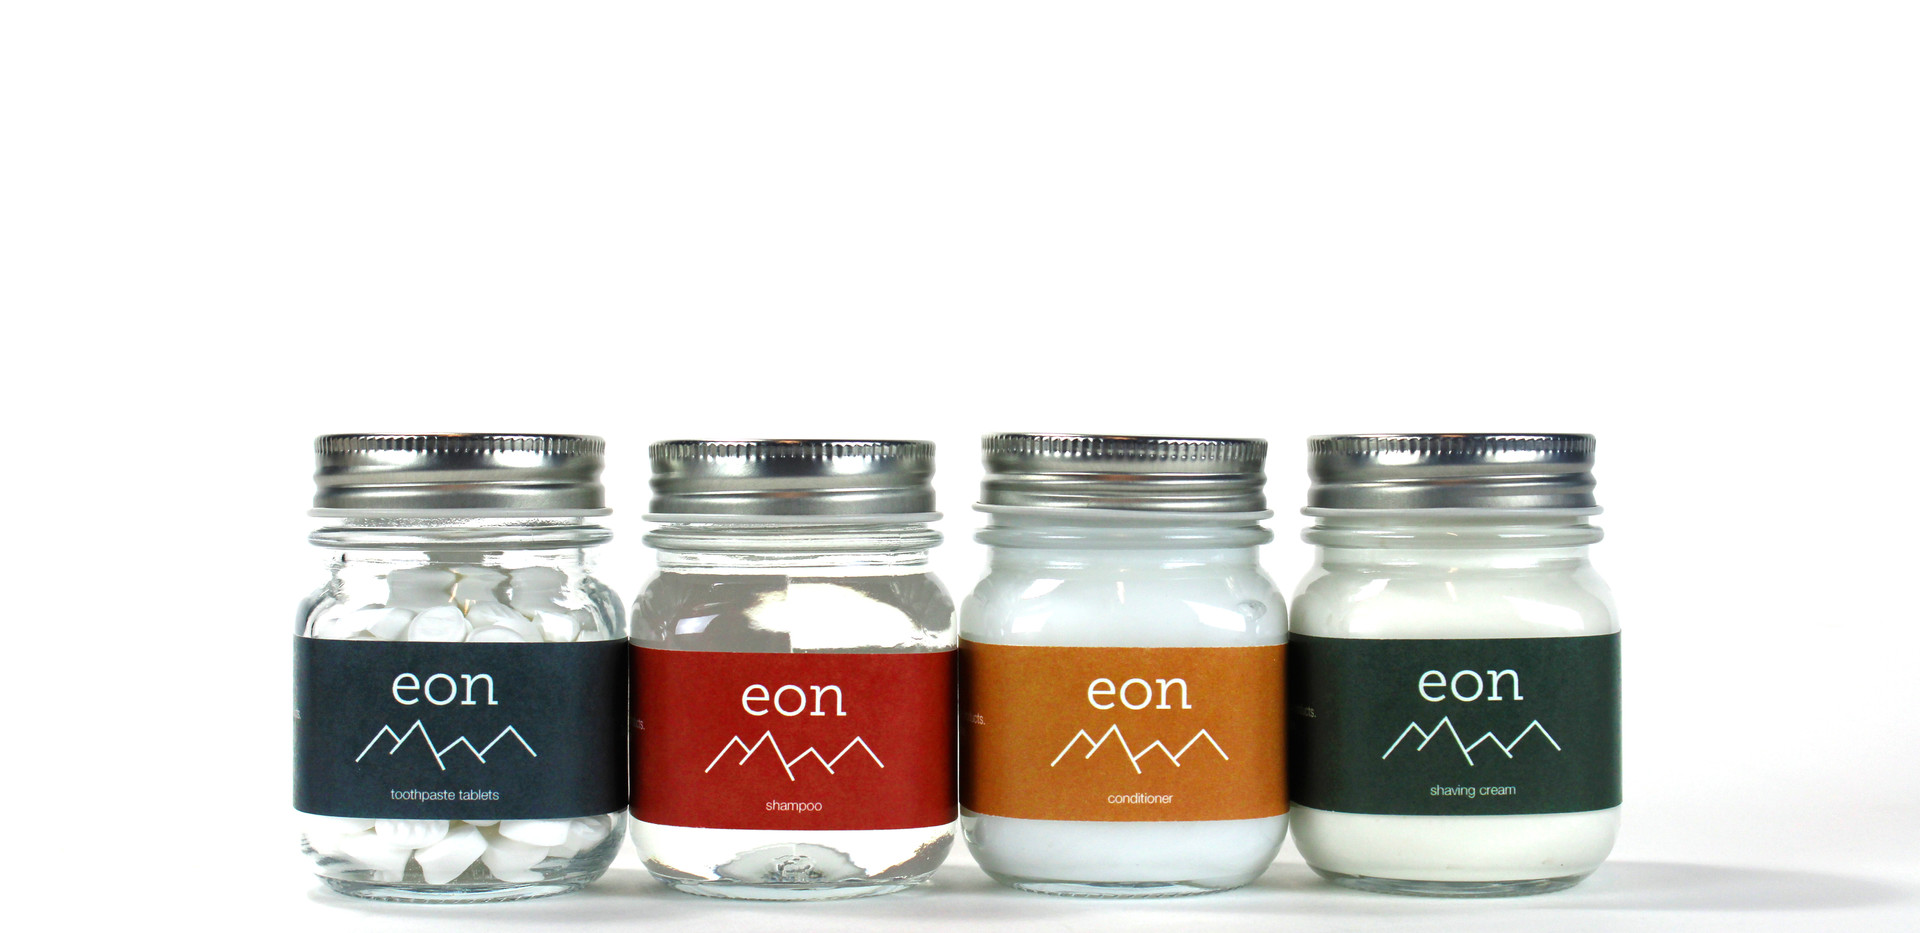 Eon Packaging